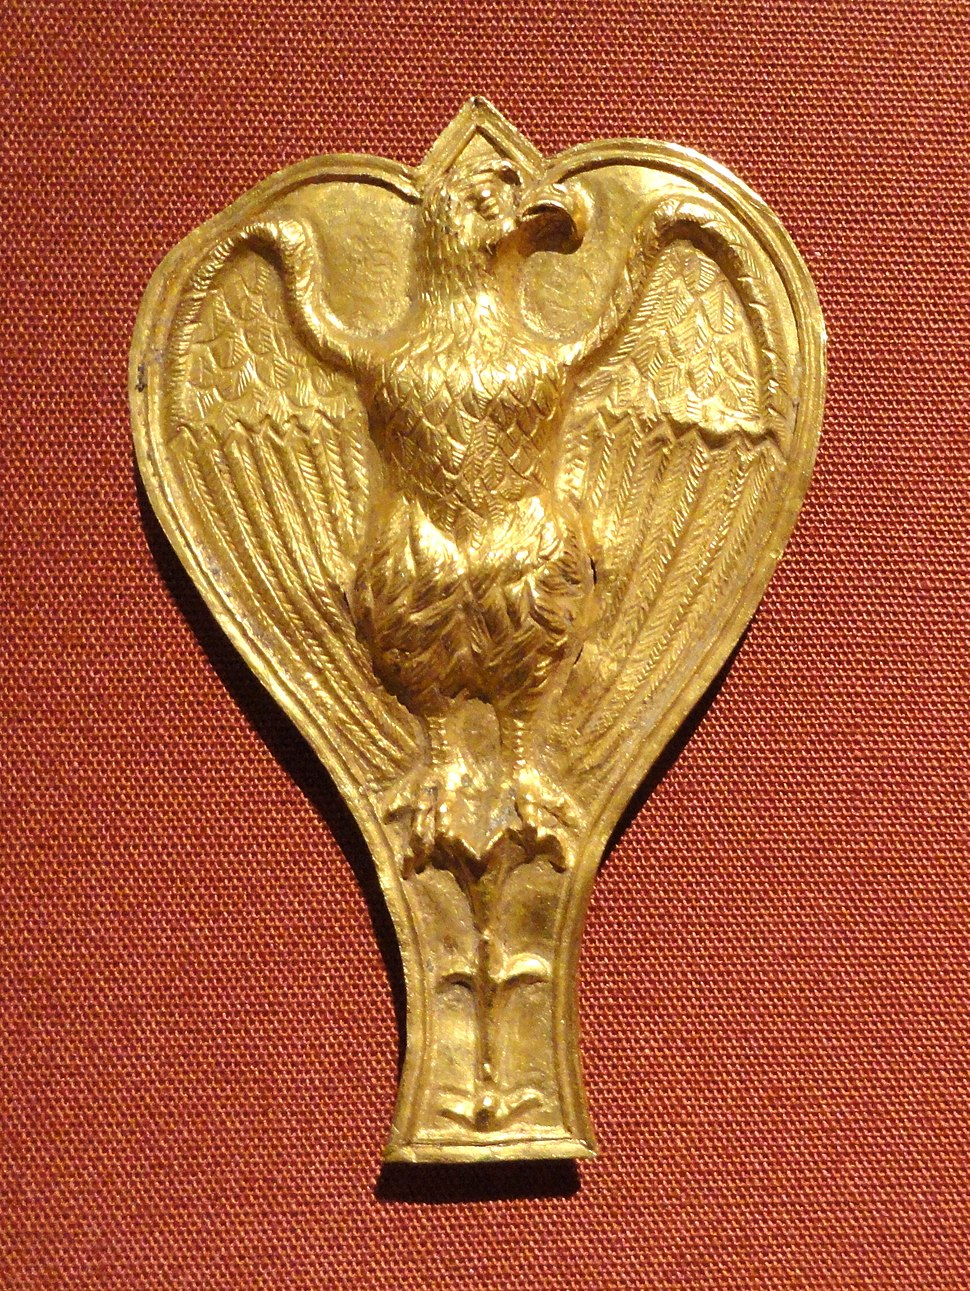 Ornament with Eagle, 100-200 AD, Roman, gold - Cleveland Museum of Art - DSC08277